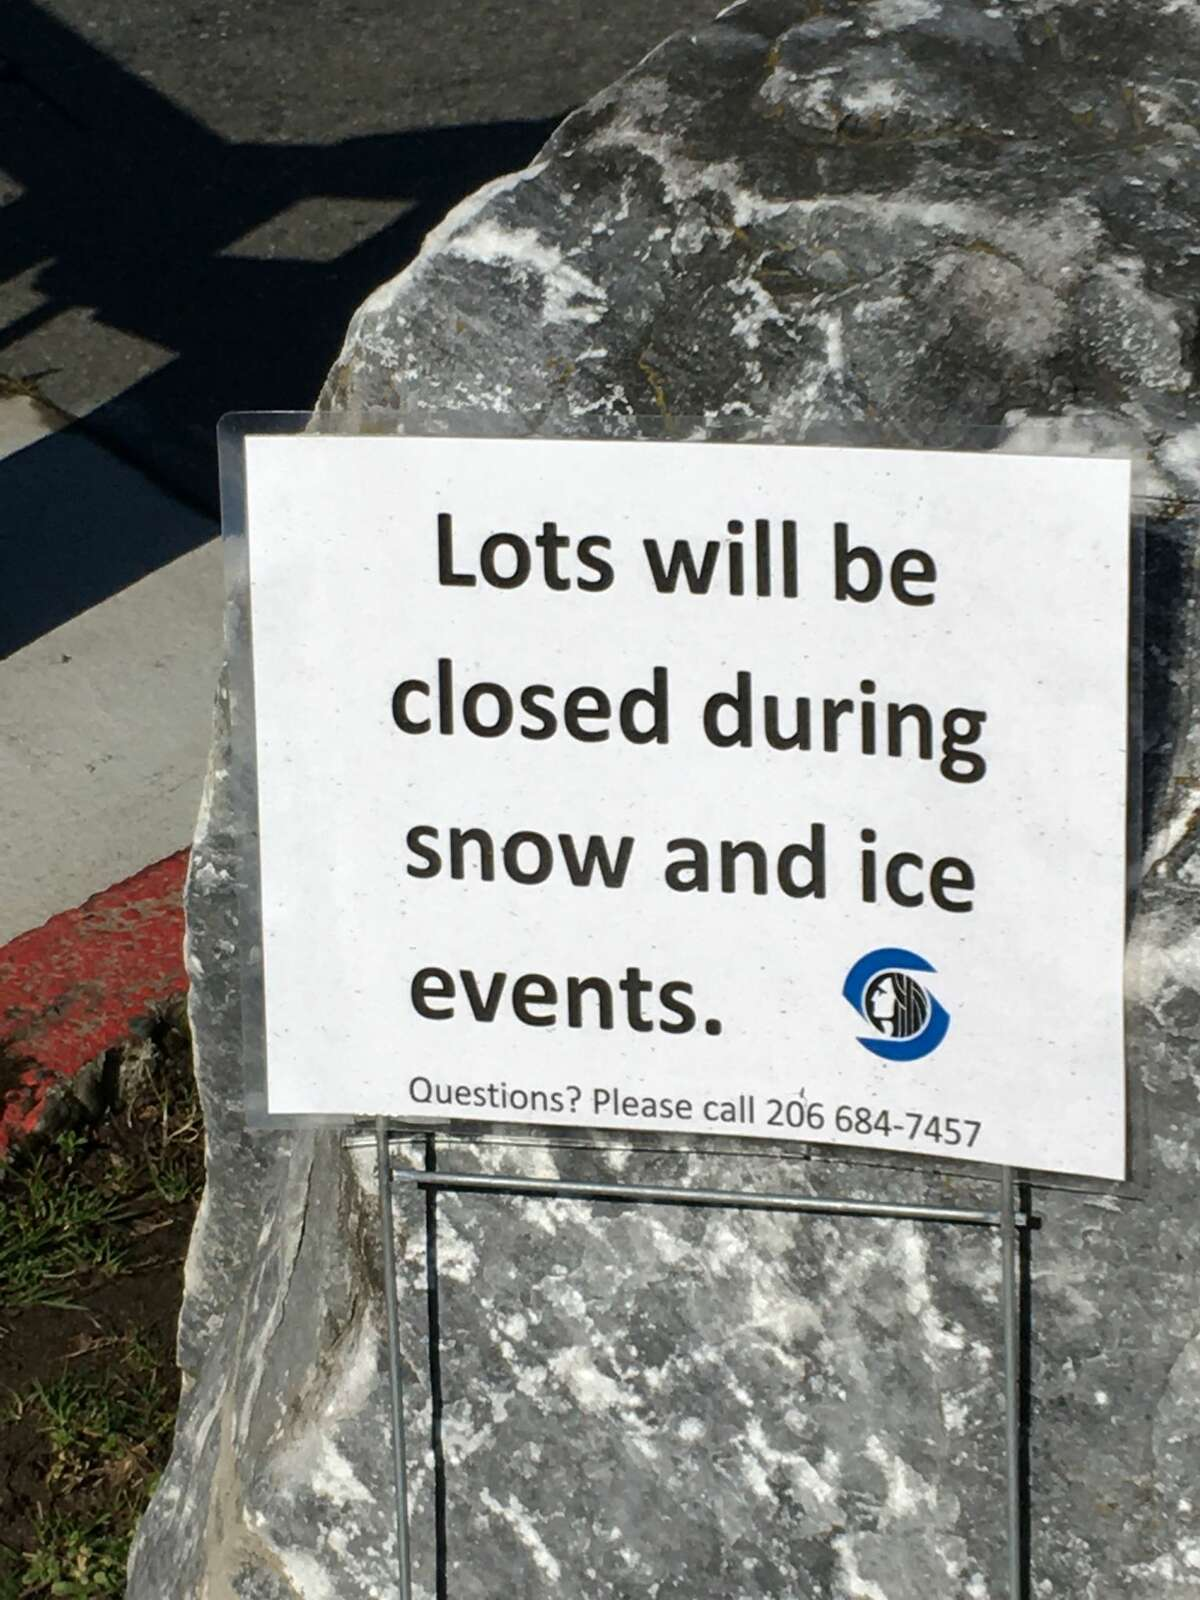 A sign posted at the parking lot entrance of Lincoln Park in West Seattle, Wash. on March 25, 2020. The parking lot was closed in an effort to increase social distancing and prevent gatherings in the parking lot under Gov. Inslee's statewide